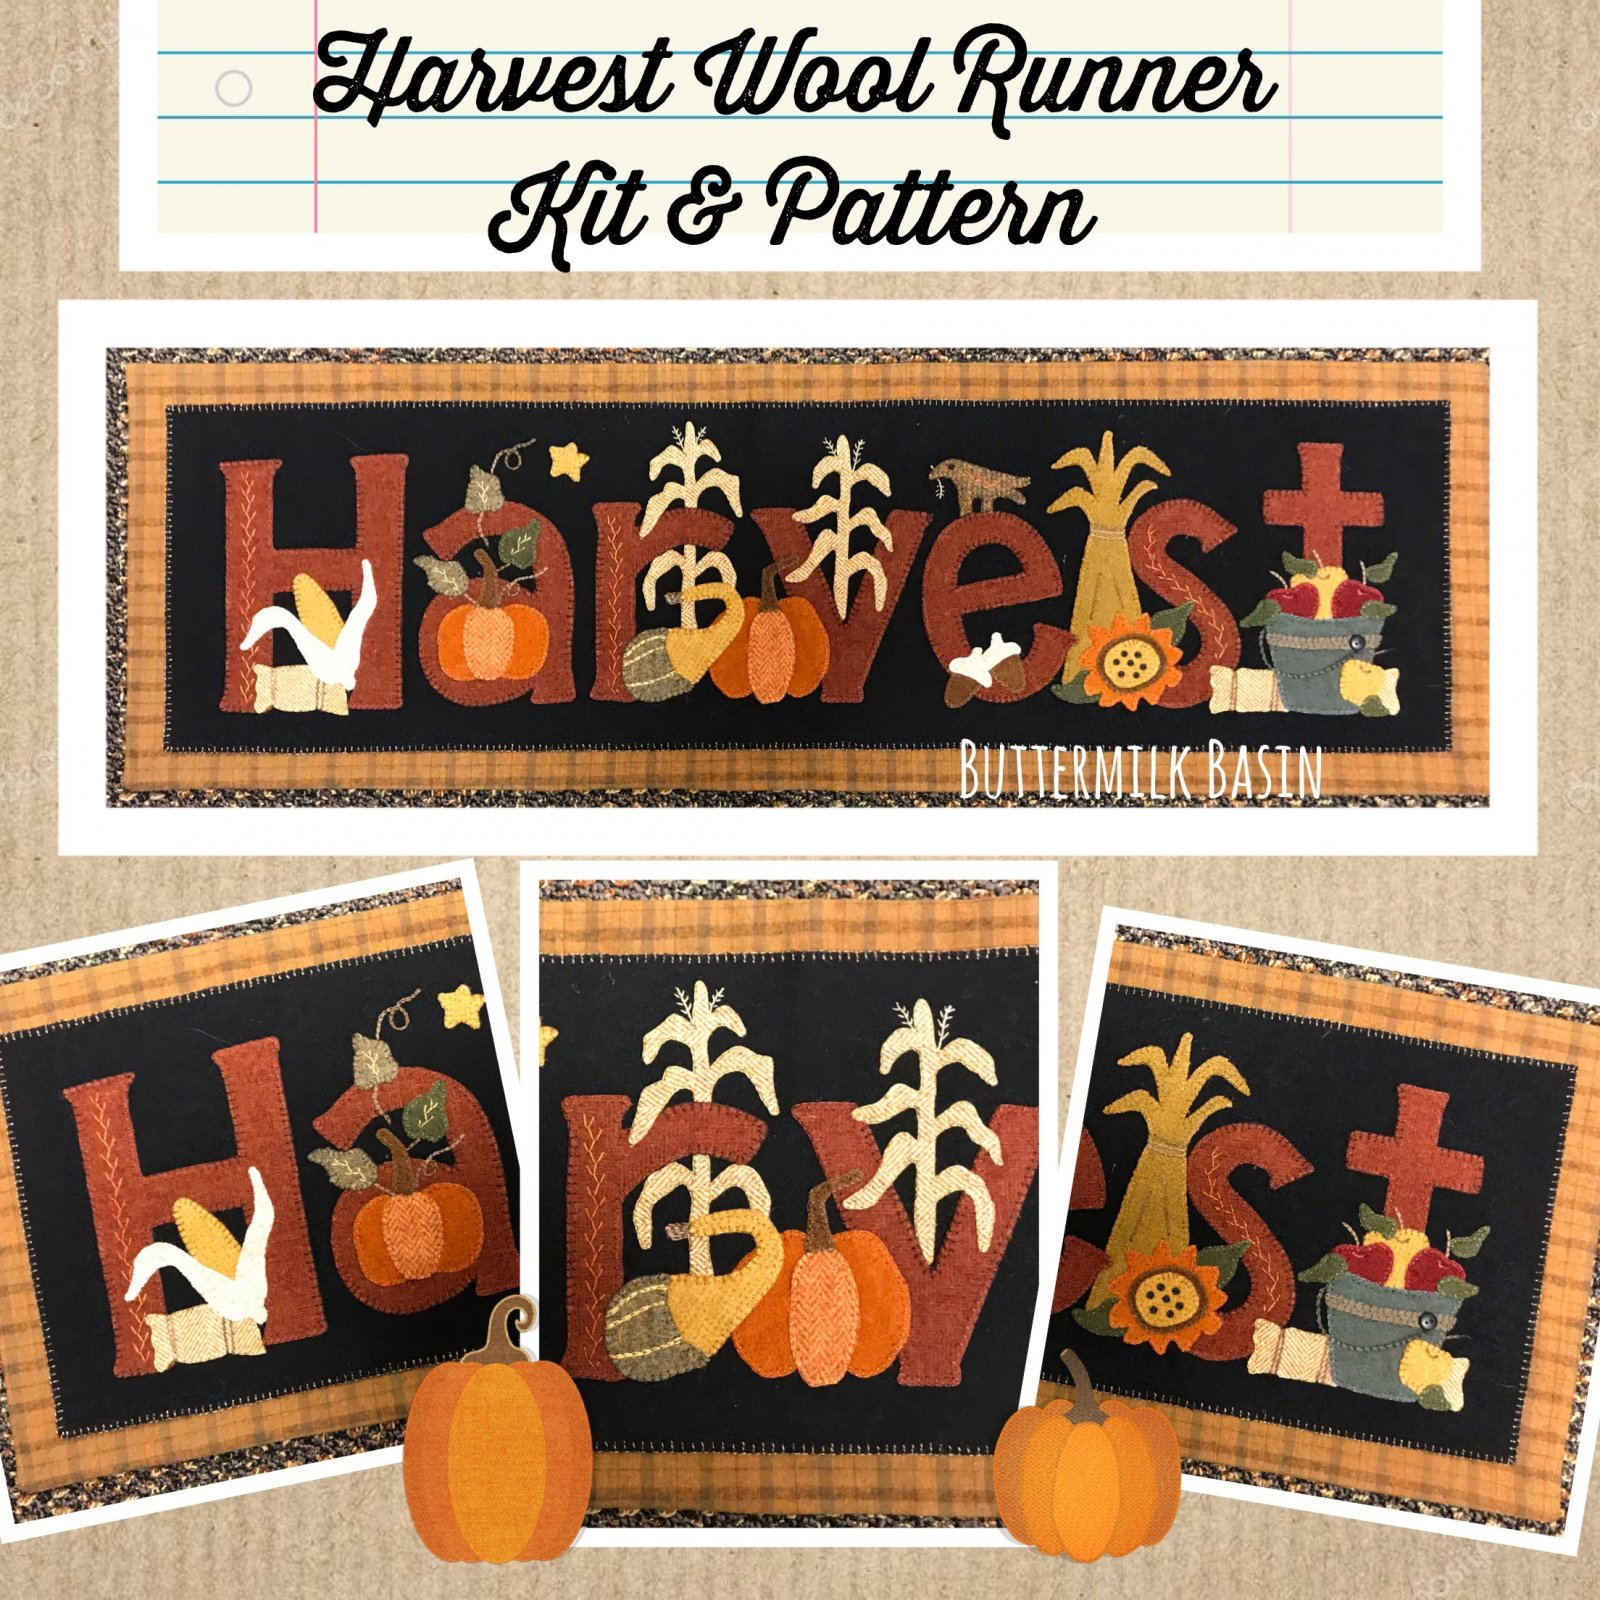 Harvest Wool Runner Kit & Pattern